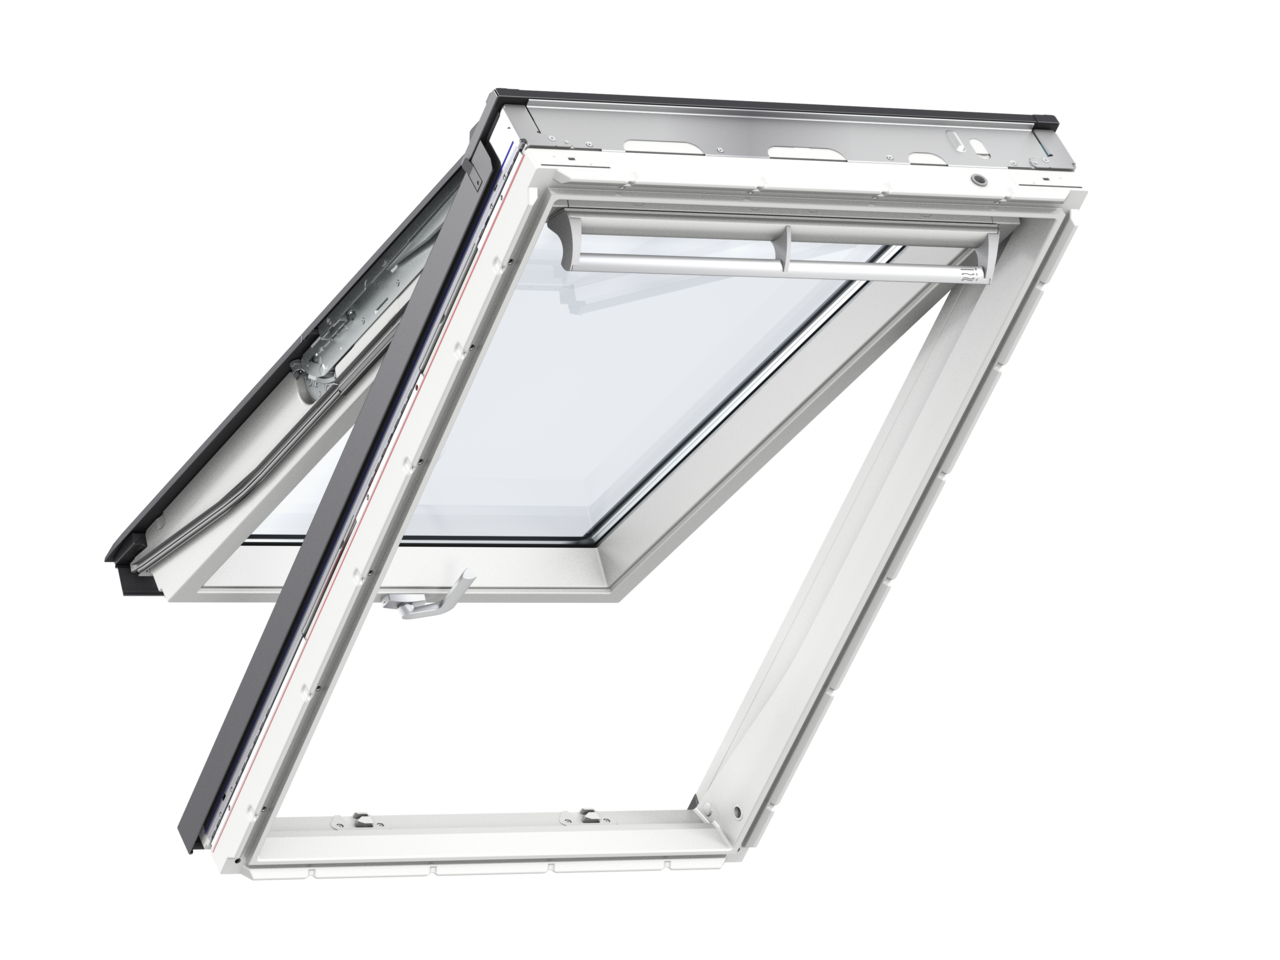 Velux GPU MK06 780 x 1180mm Top Hung 34Pane Roof Window - White Polyurethane